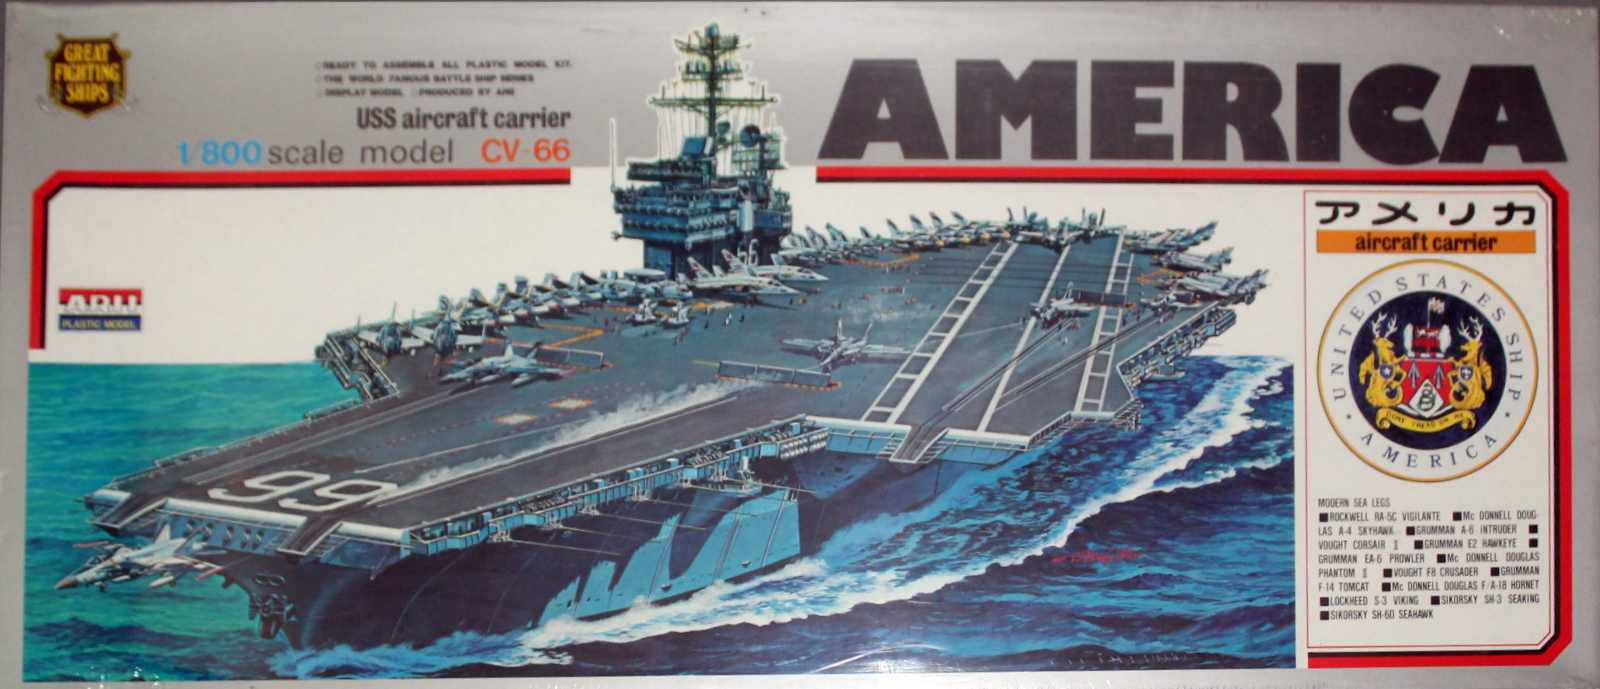 Supercarrier Dvd.CPU Performance Short Form The ASRock ...